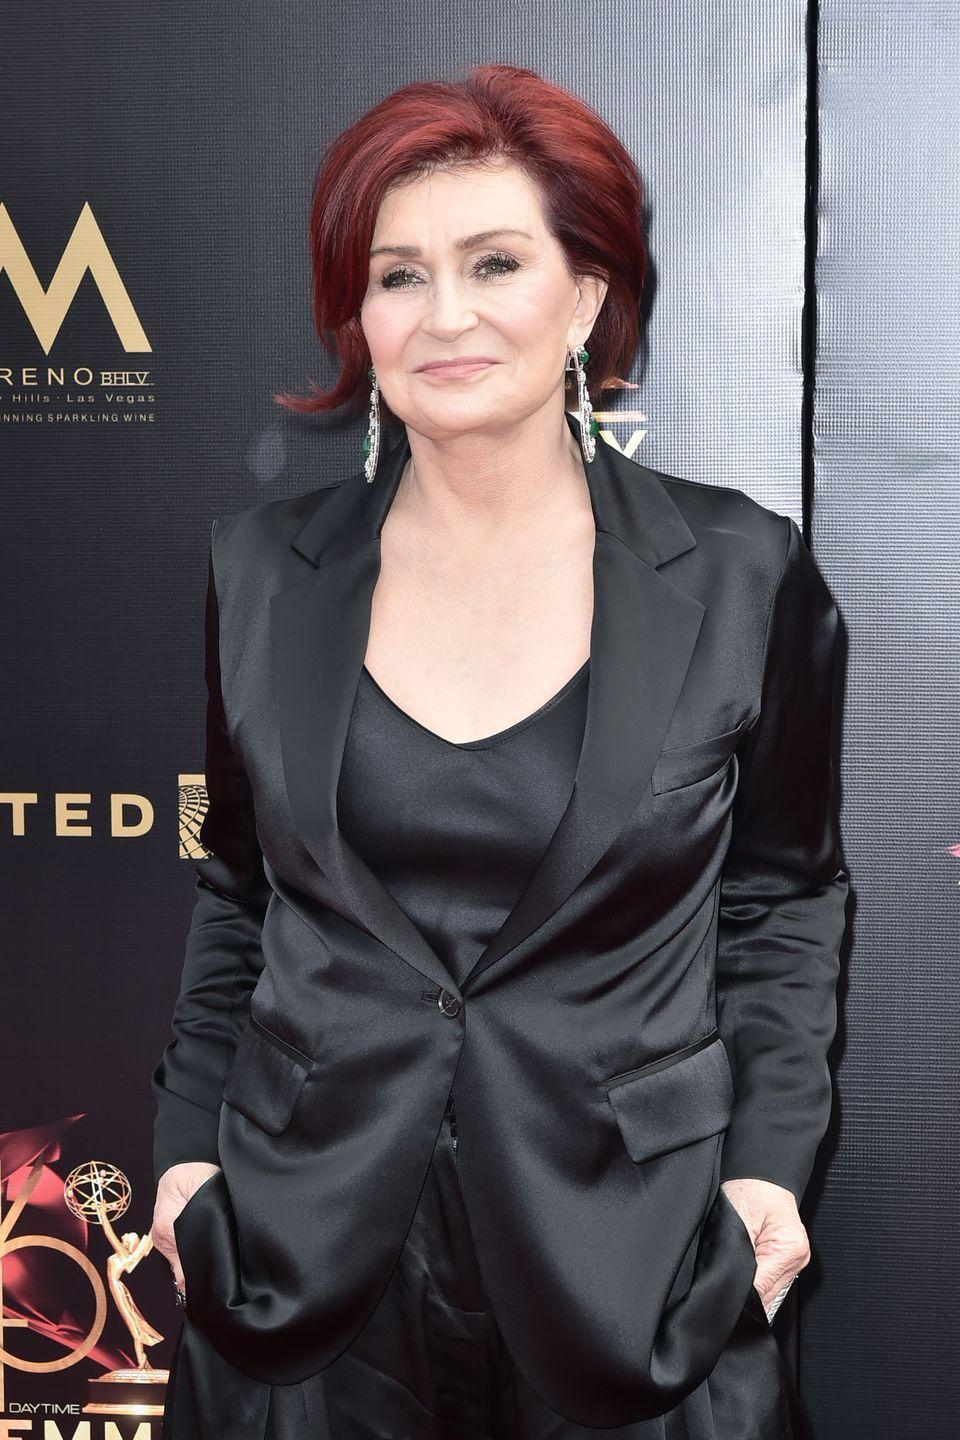 """<p>The procedure made her very sick, so she had the band removed in 2006. """"I've struggled with my weight for my entire life. I've been fat and I've been thin,"""" she told <em><a href=""""https://www.usmagazine.com/celebrity-body/news/sharon-osbourne-i-lost-28-pounds-in-three-months-20121311/"""" rel=""""nofollow noopener"""" target=""""_blank"""" data-ylk=""""slk:Us Weekly"""" class=""""link rapid-noclick-resp"""">Us Weekly</a></em>. """"As you know, I got the lap band and lost a ton of weight, but it made me so sick. That's why I had to remove it. But when I removed it, I gained about 45 pounds."""" She's since lost the weight she gained back by eating a healthy diet and working out.</p>"""